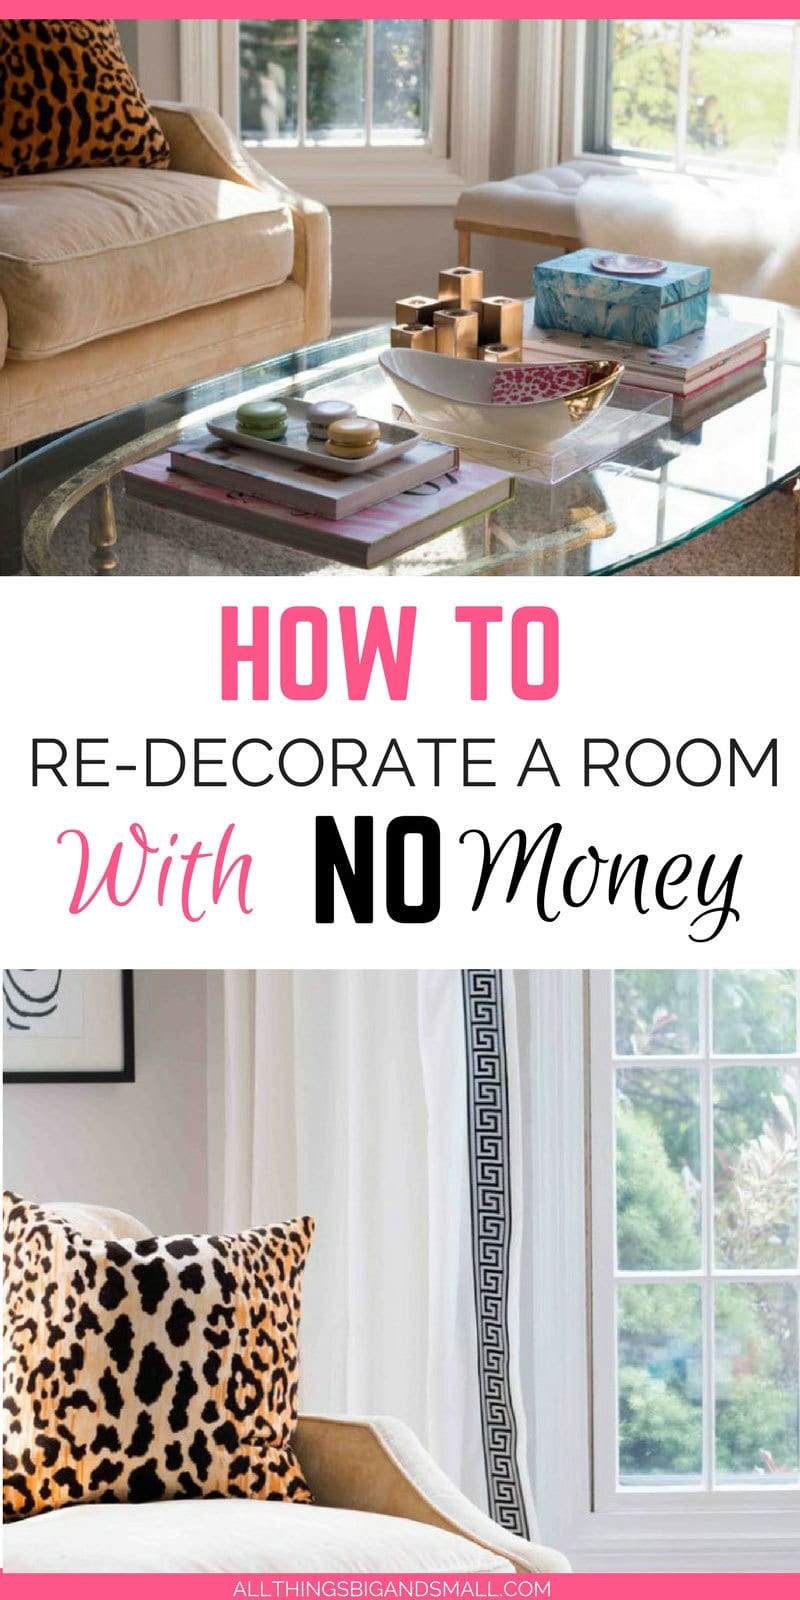 How to Decorate a Room with No Money -- Room Design and Layout tips ALL THINGS BIG AND SMALL - Room Design Layout: How to Fix a Room Without Spending Money by popular home decor blogger DIY Decor Mom